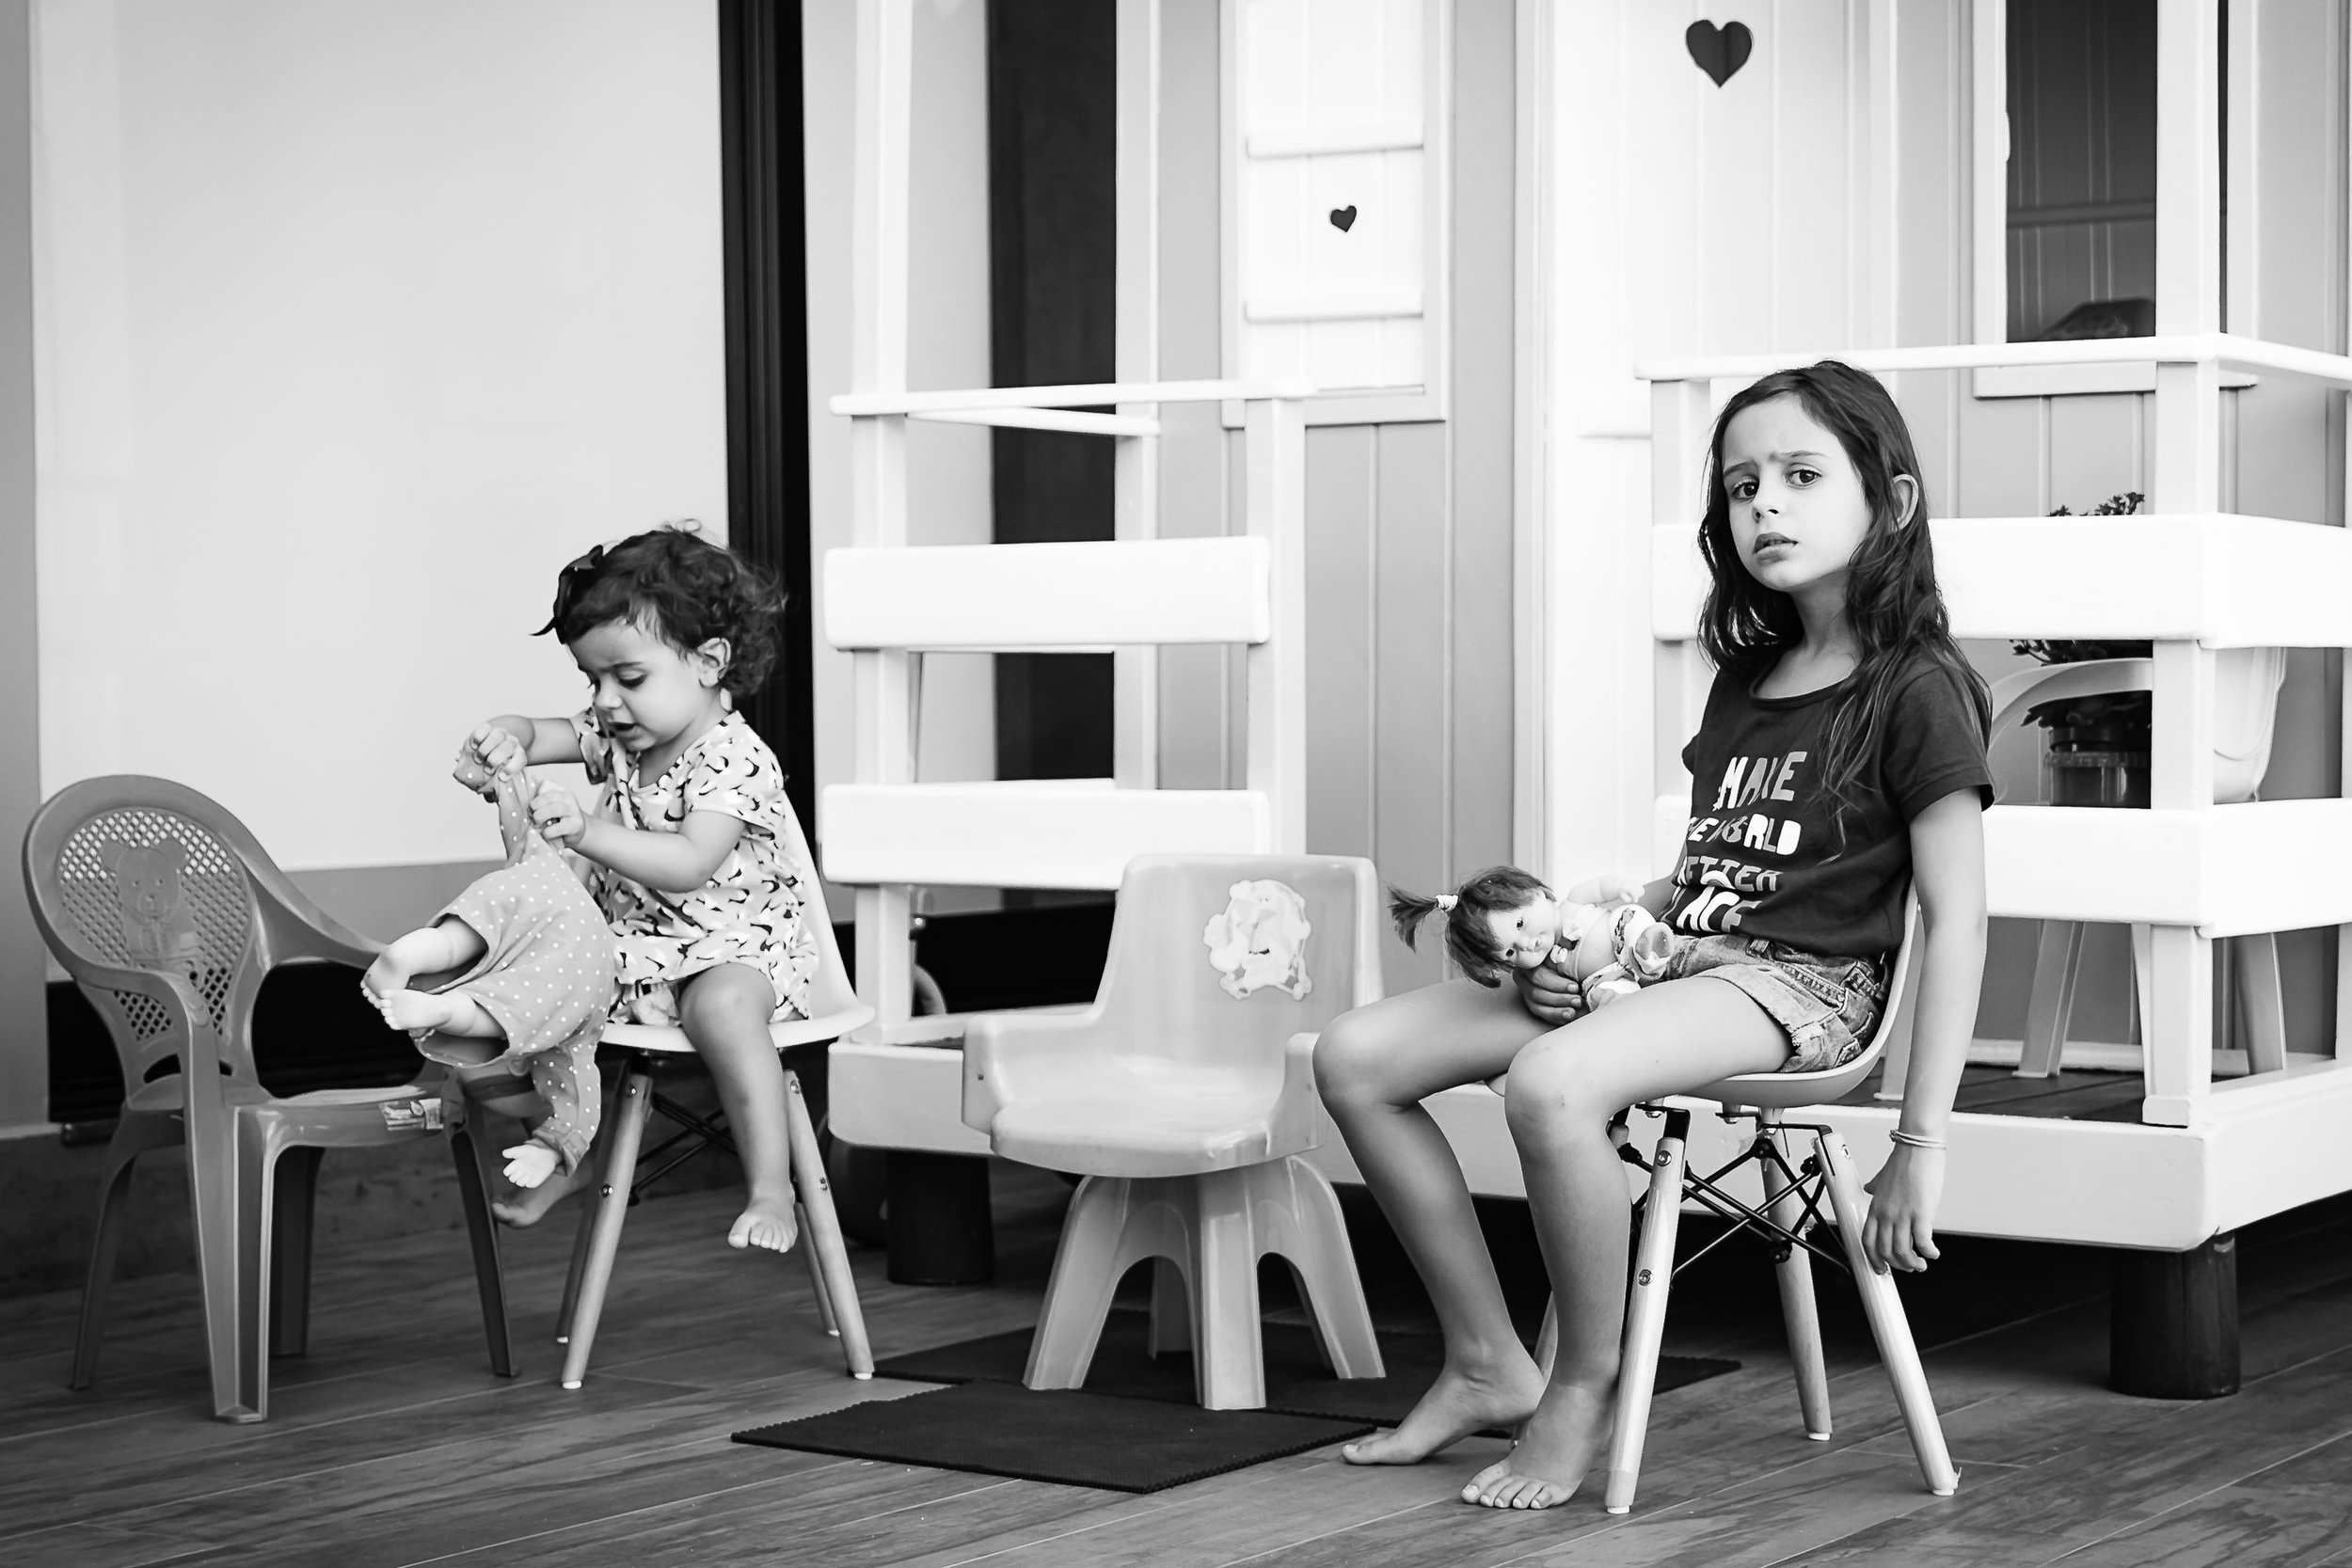 sisters-playing-with-dolls.jpg